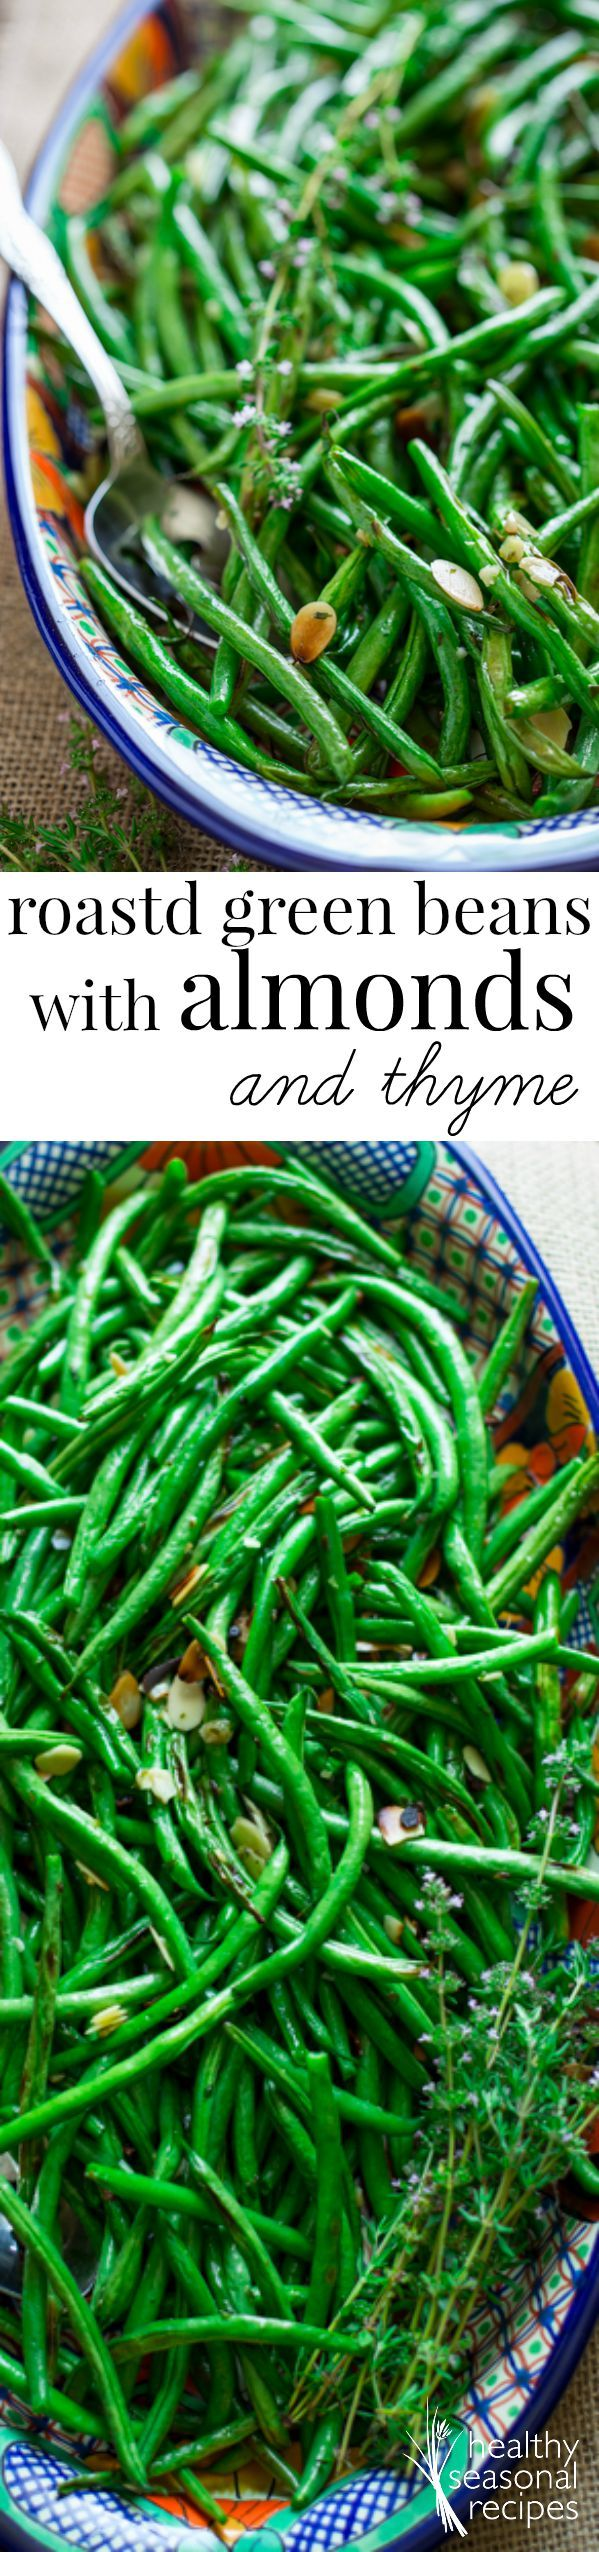 roasted green beans with almonds and thyme - Healthy Seasonal Recipes